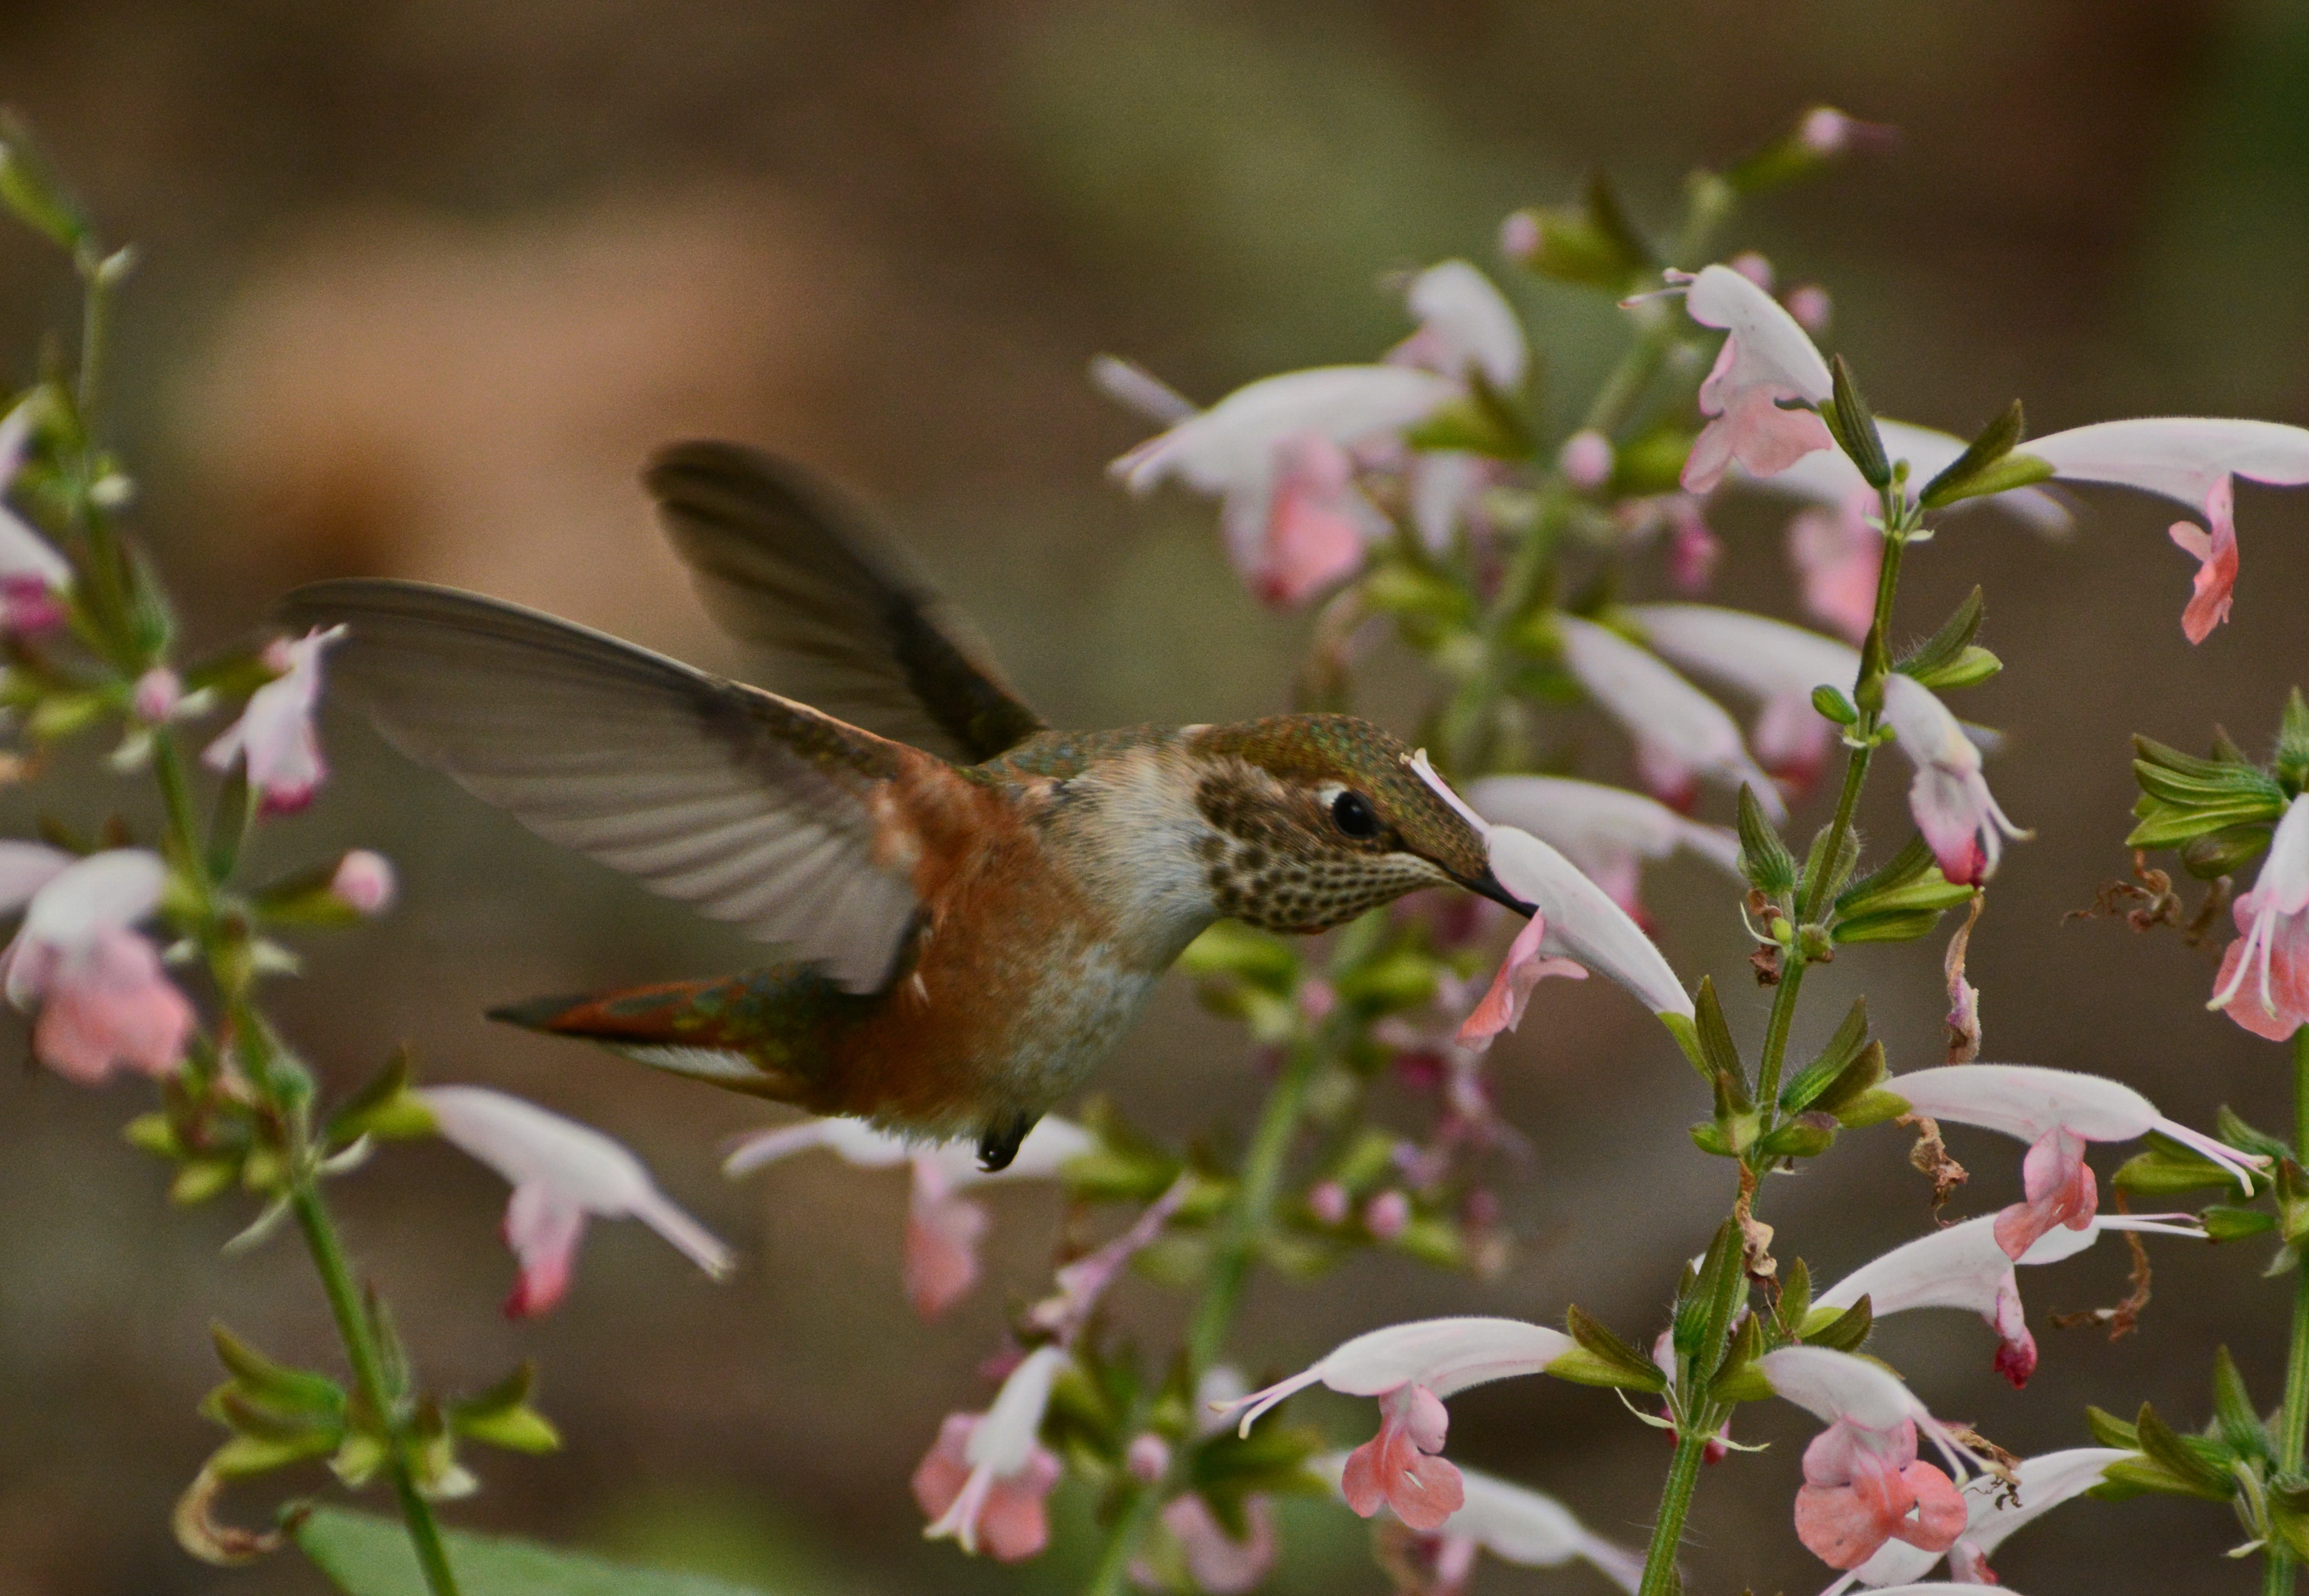 Hummingbird feeding © Tania Simpson